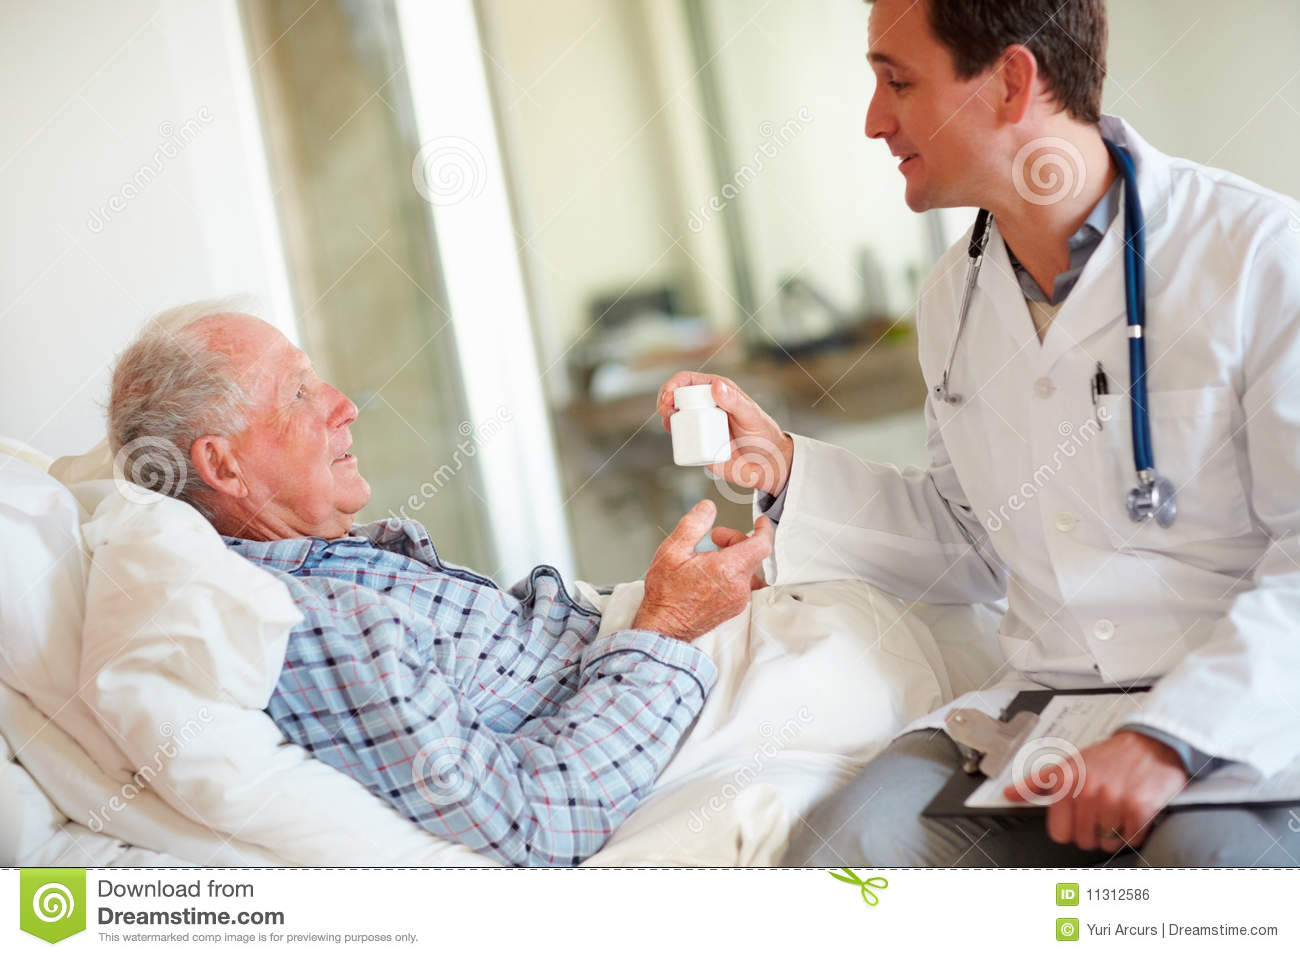 Royalty Free Stock Image  Doctor Giving Medicine To Patient  Image